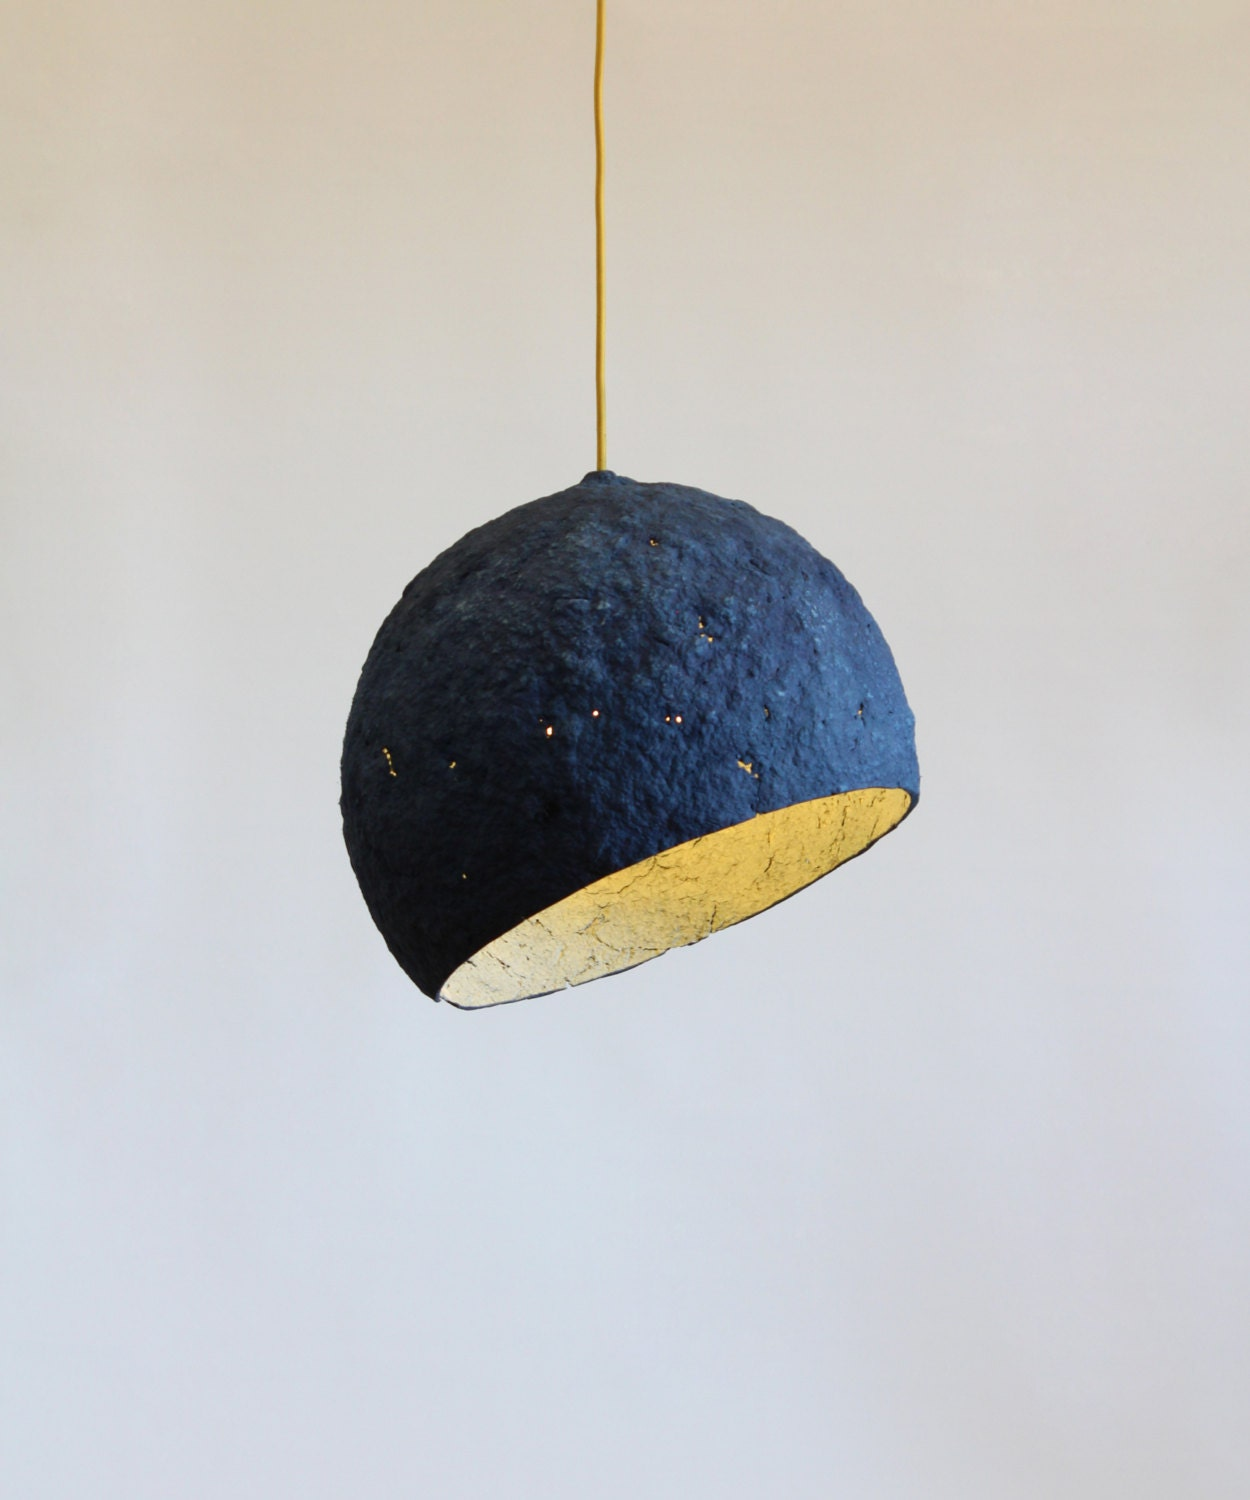 Paper mache lamp pluto lamp pendant light hanging lamp for Papier mache lanterns